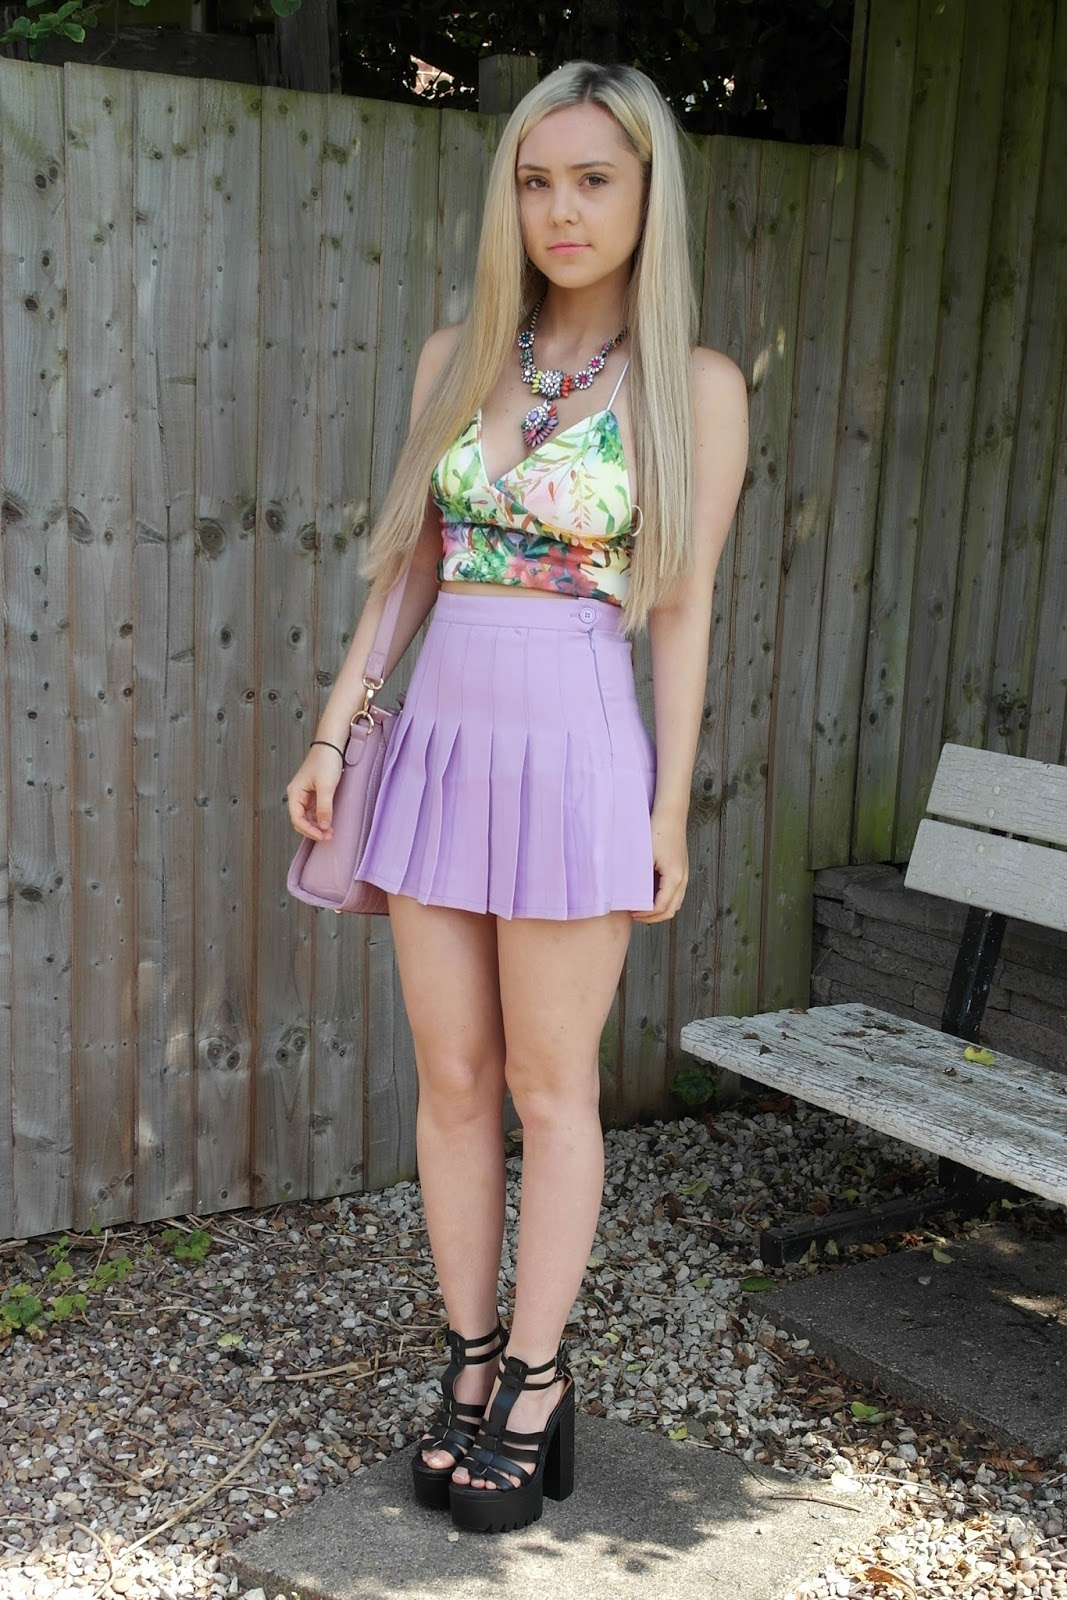 Tennis skirt and heels